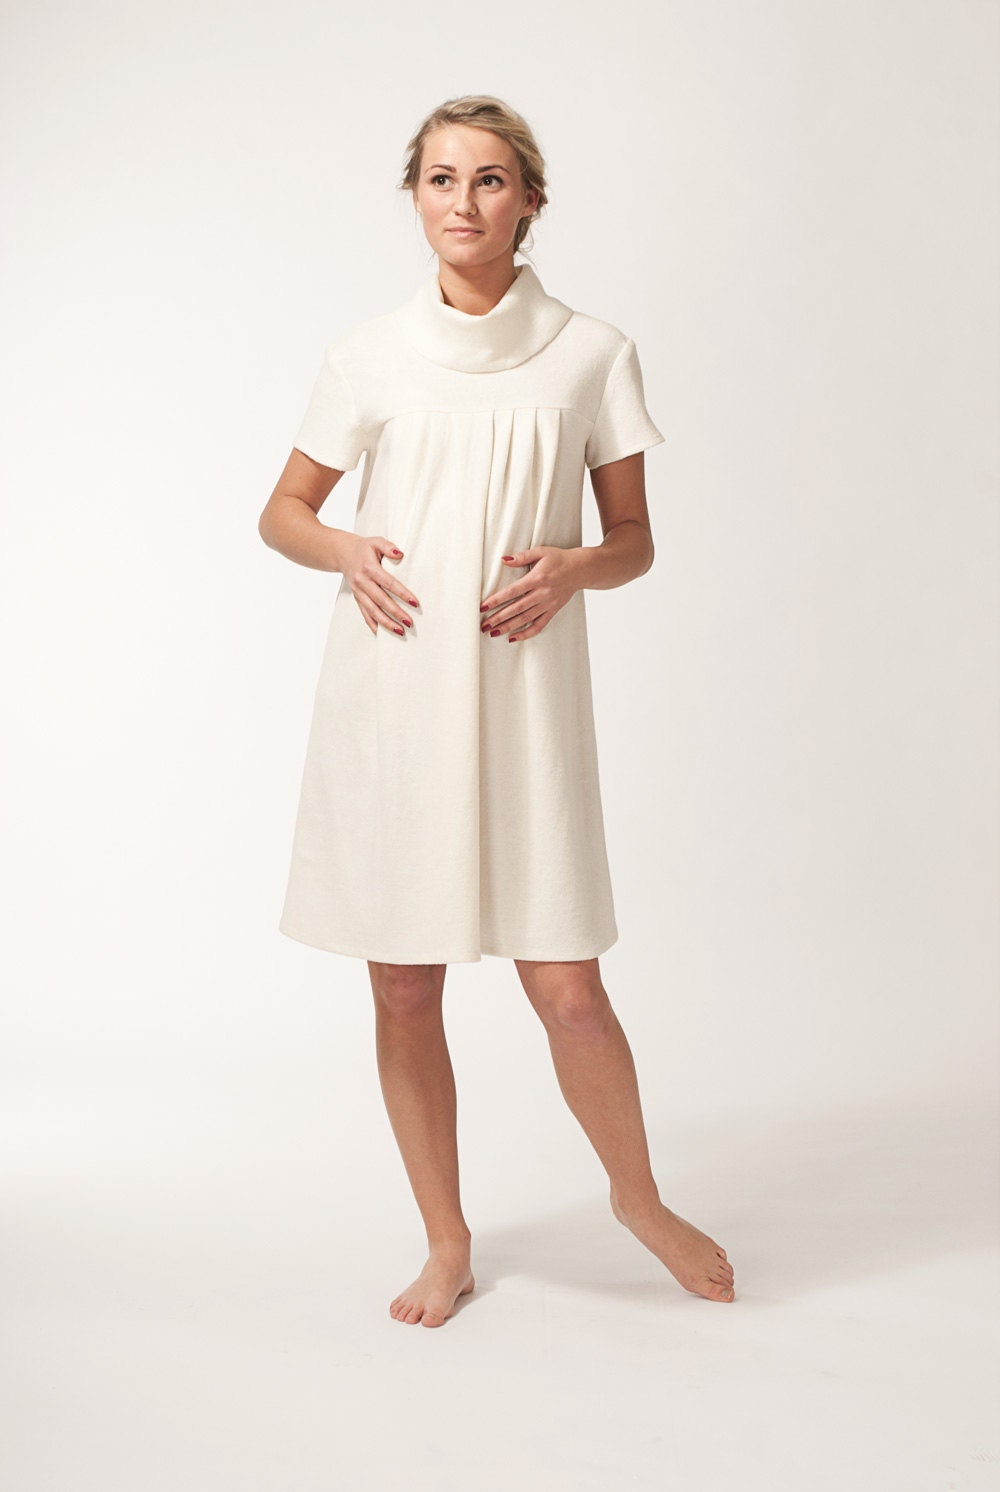 Dream Cream Maternity tunic - alicebmaternity